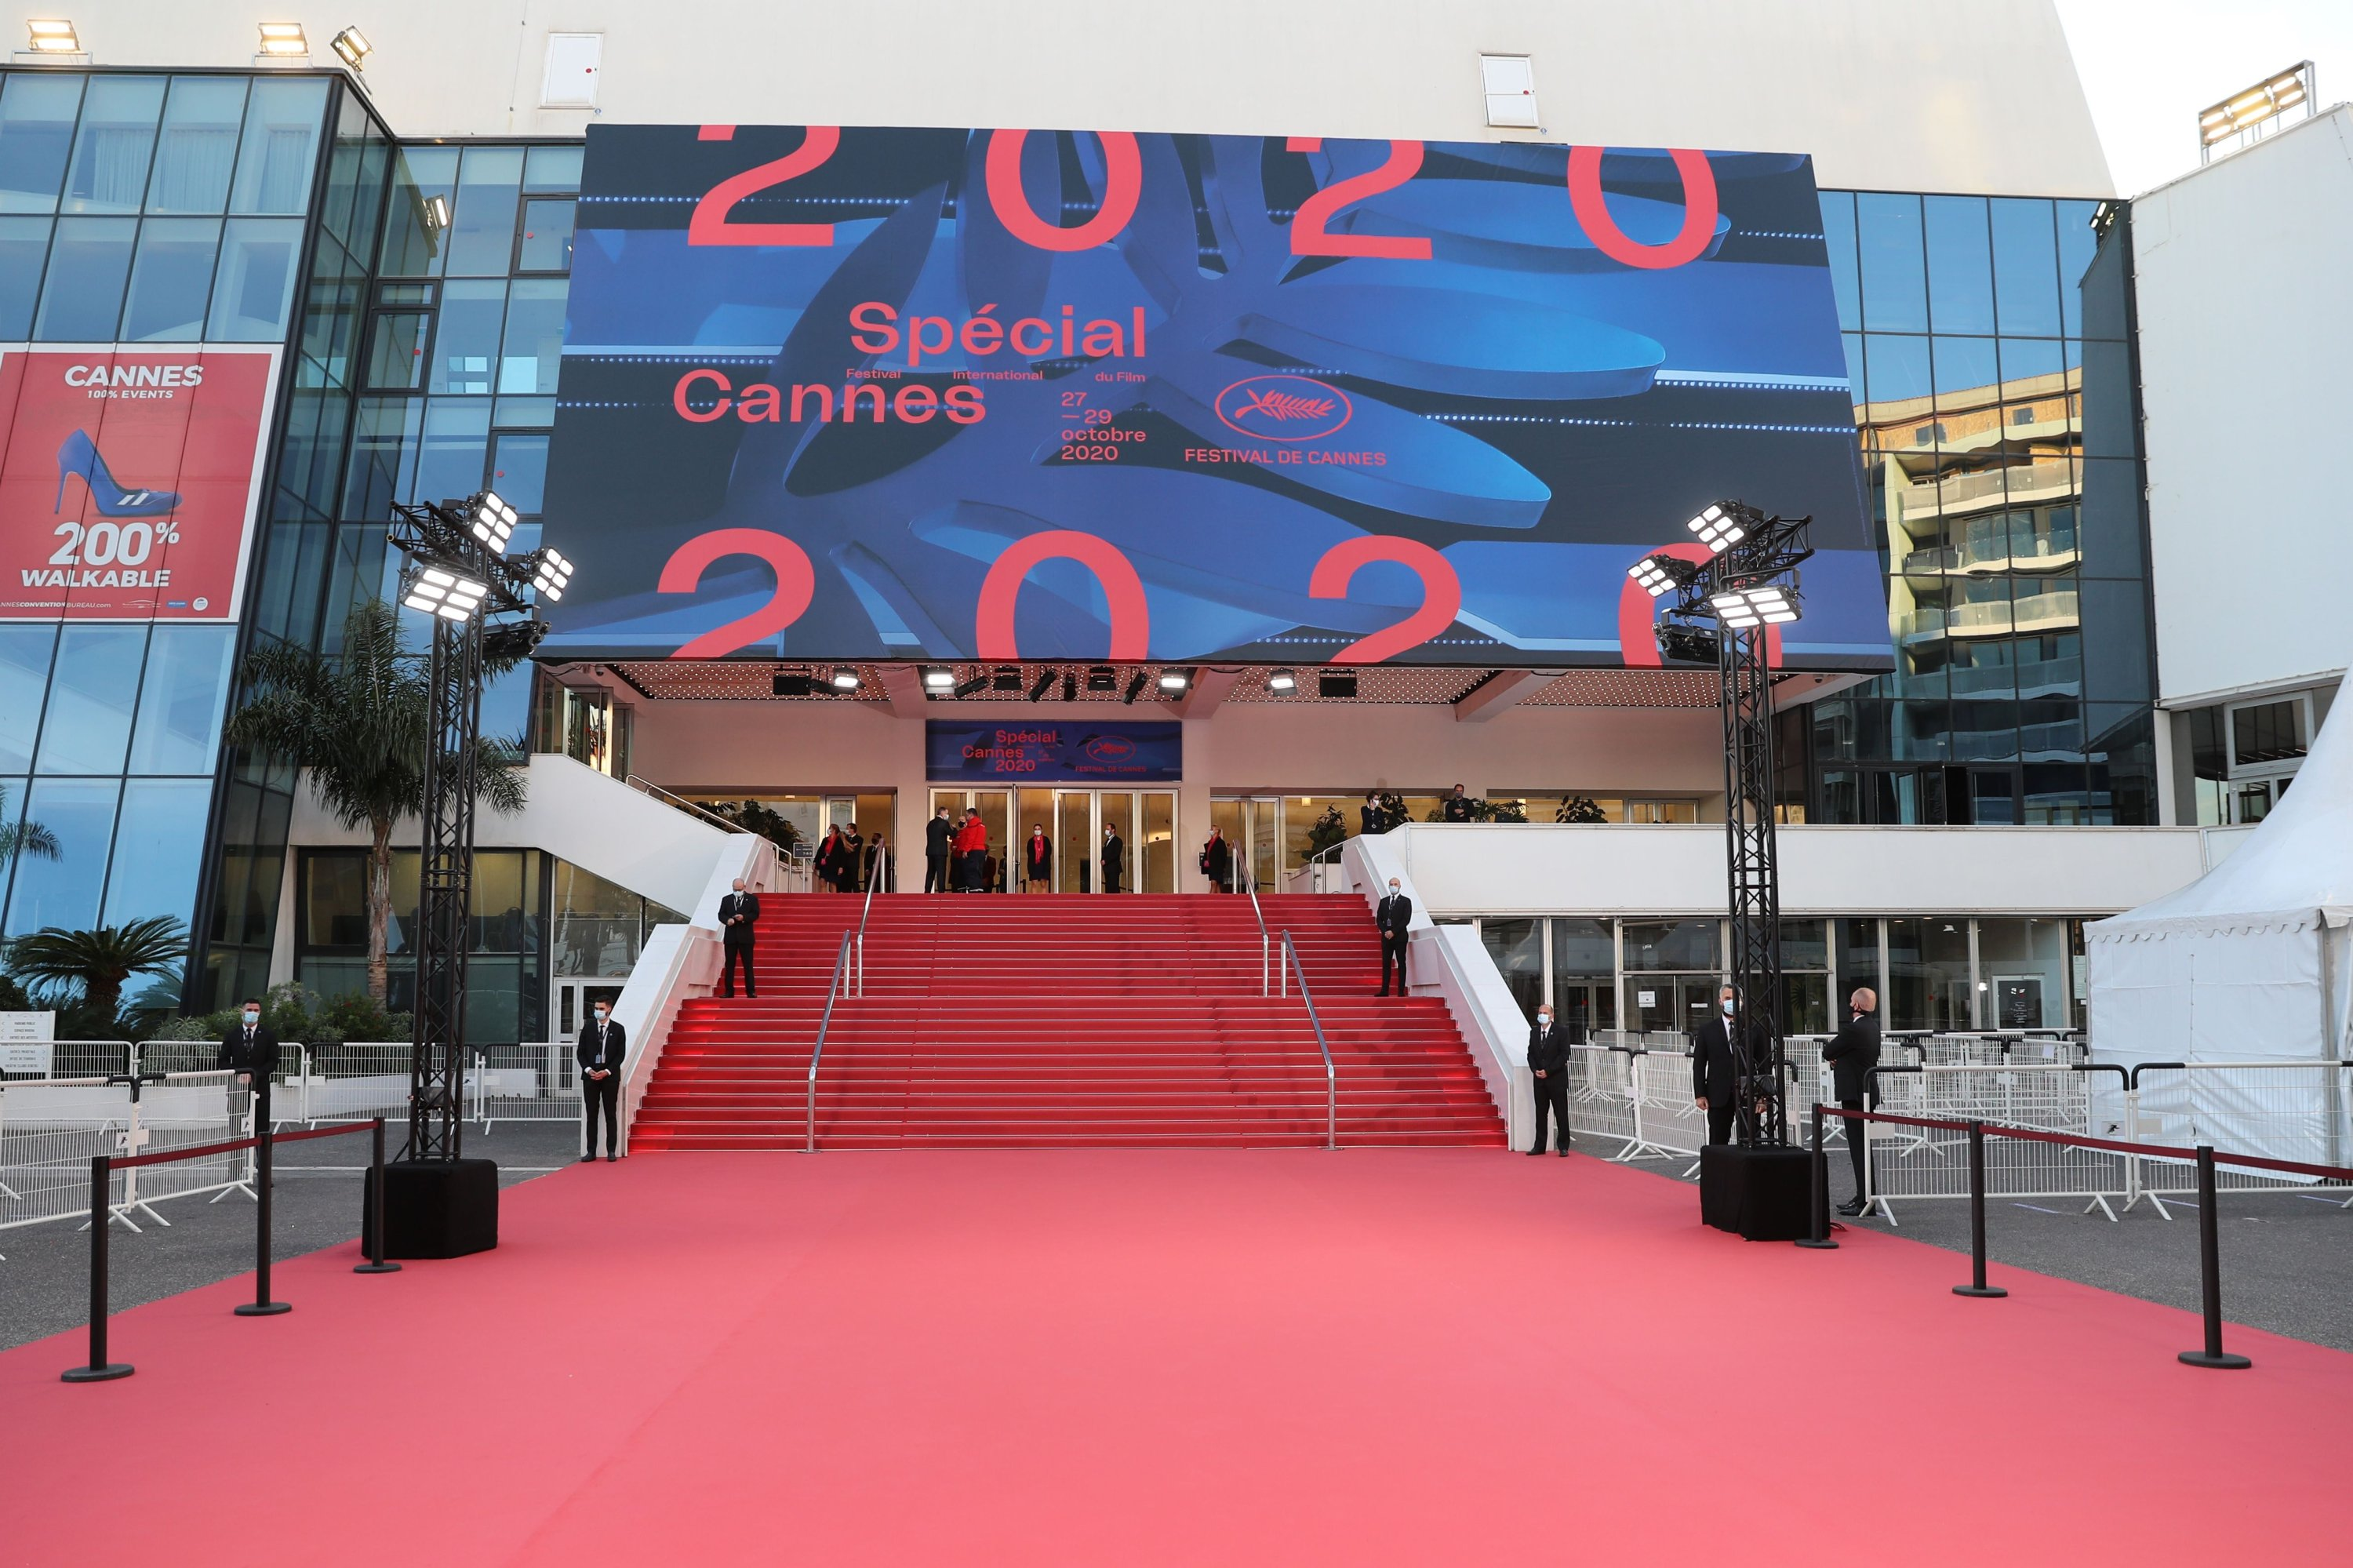 A picture shows a red carpet outside the Palais des Festivals et des Congres ahead of Cannes 2020 Special, a mini-version of the Cannes Film Festival, on Oct. 27, 2020, in Cannes, southeastern France. (AFP PHOTO)